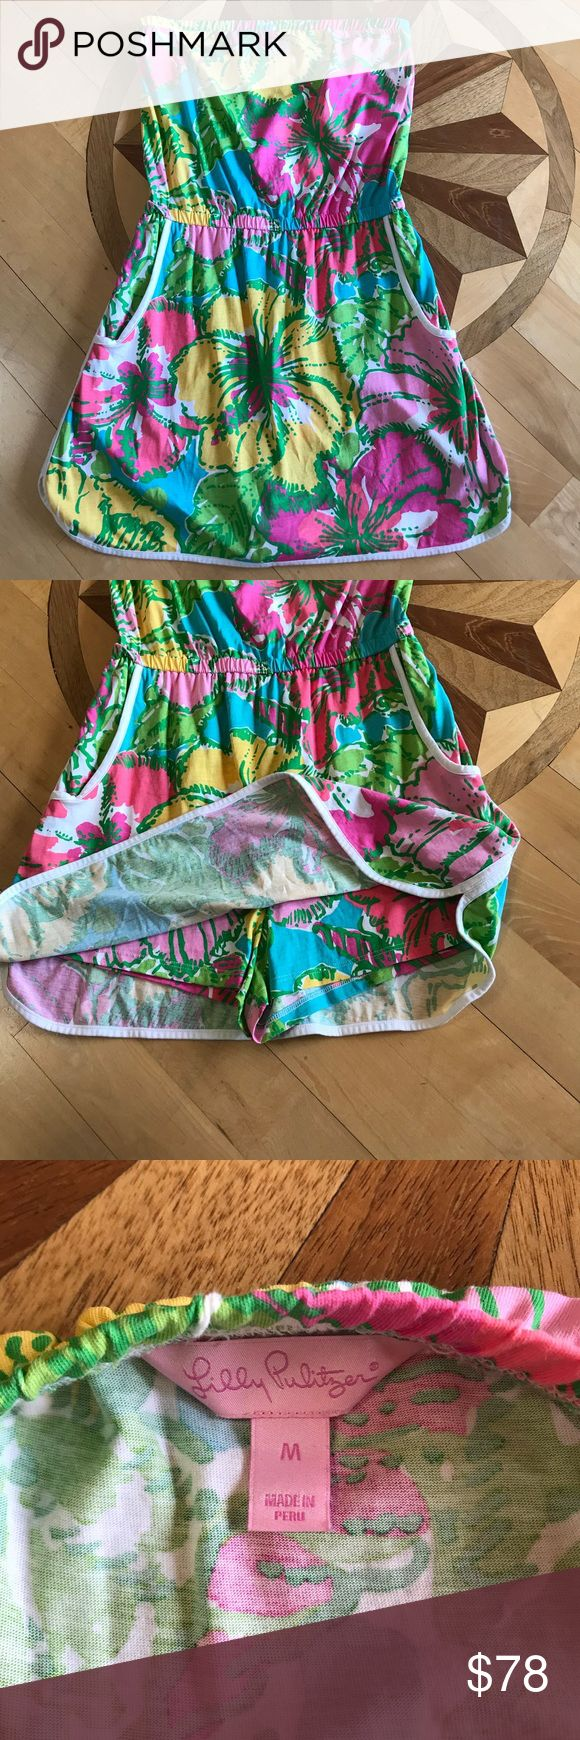 Lilly Tube Top/Skort Medium Adorable Lilly one piece strapless piece with hidden shorts under. Looks like a skirt! Adorable and bright. Worn once. Hung to dry. Size medium, but to me it's not made big. Lilly Pulitzer Other